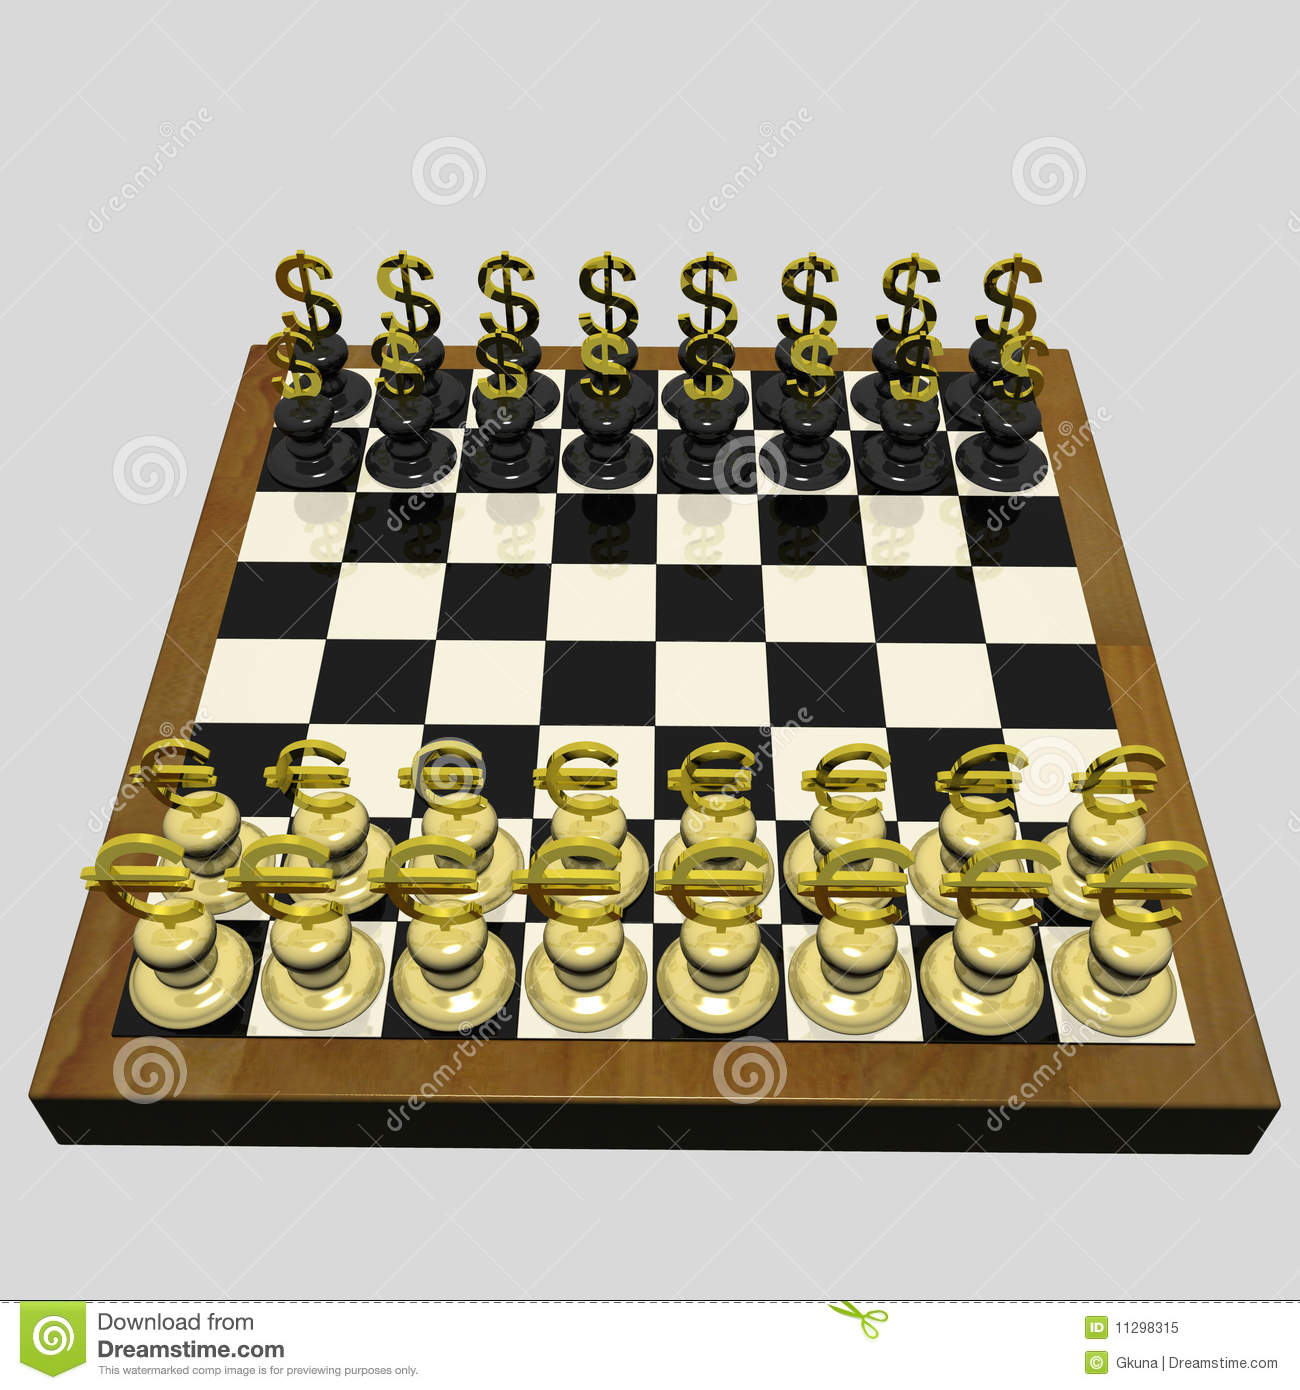 free illustration chessboard render - photo #12